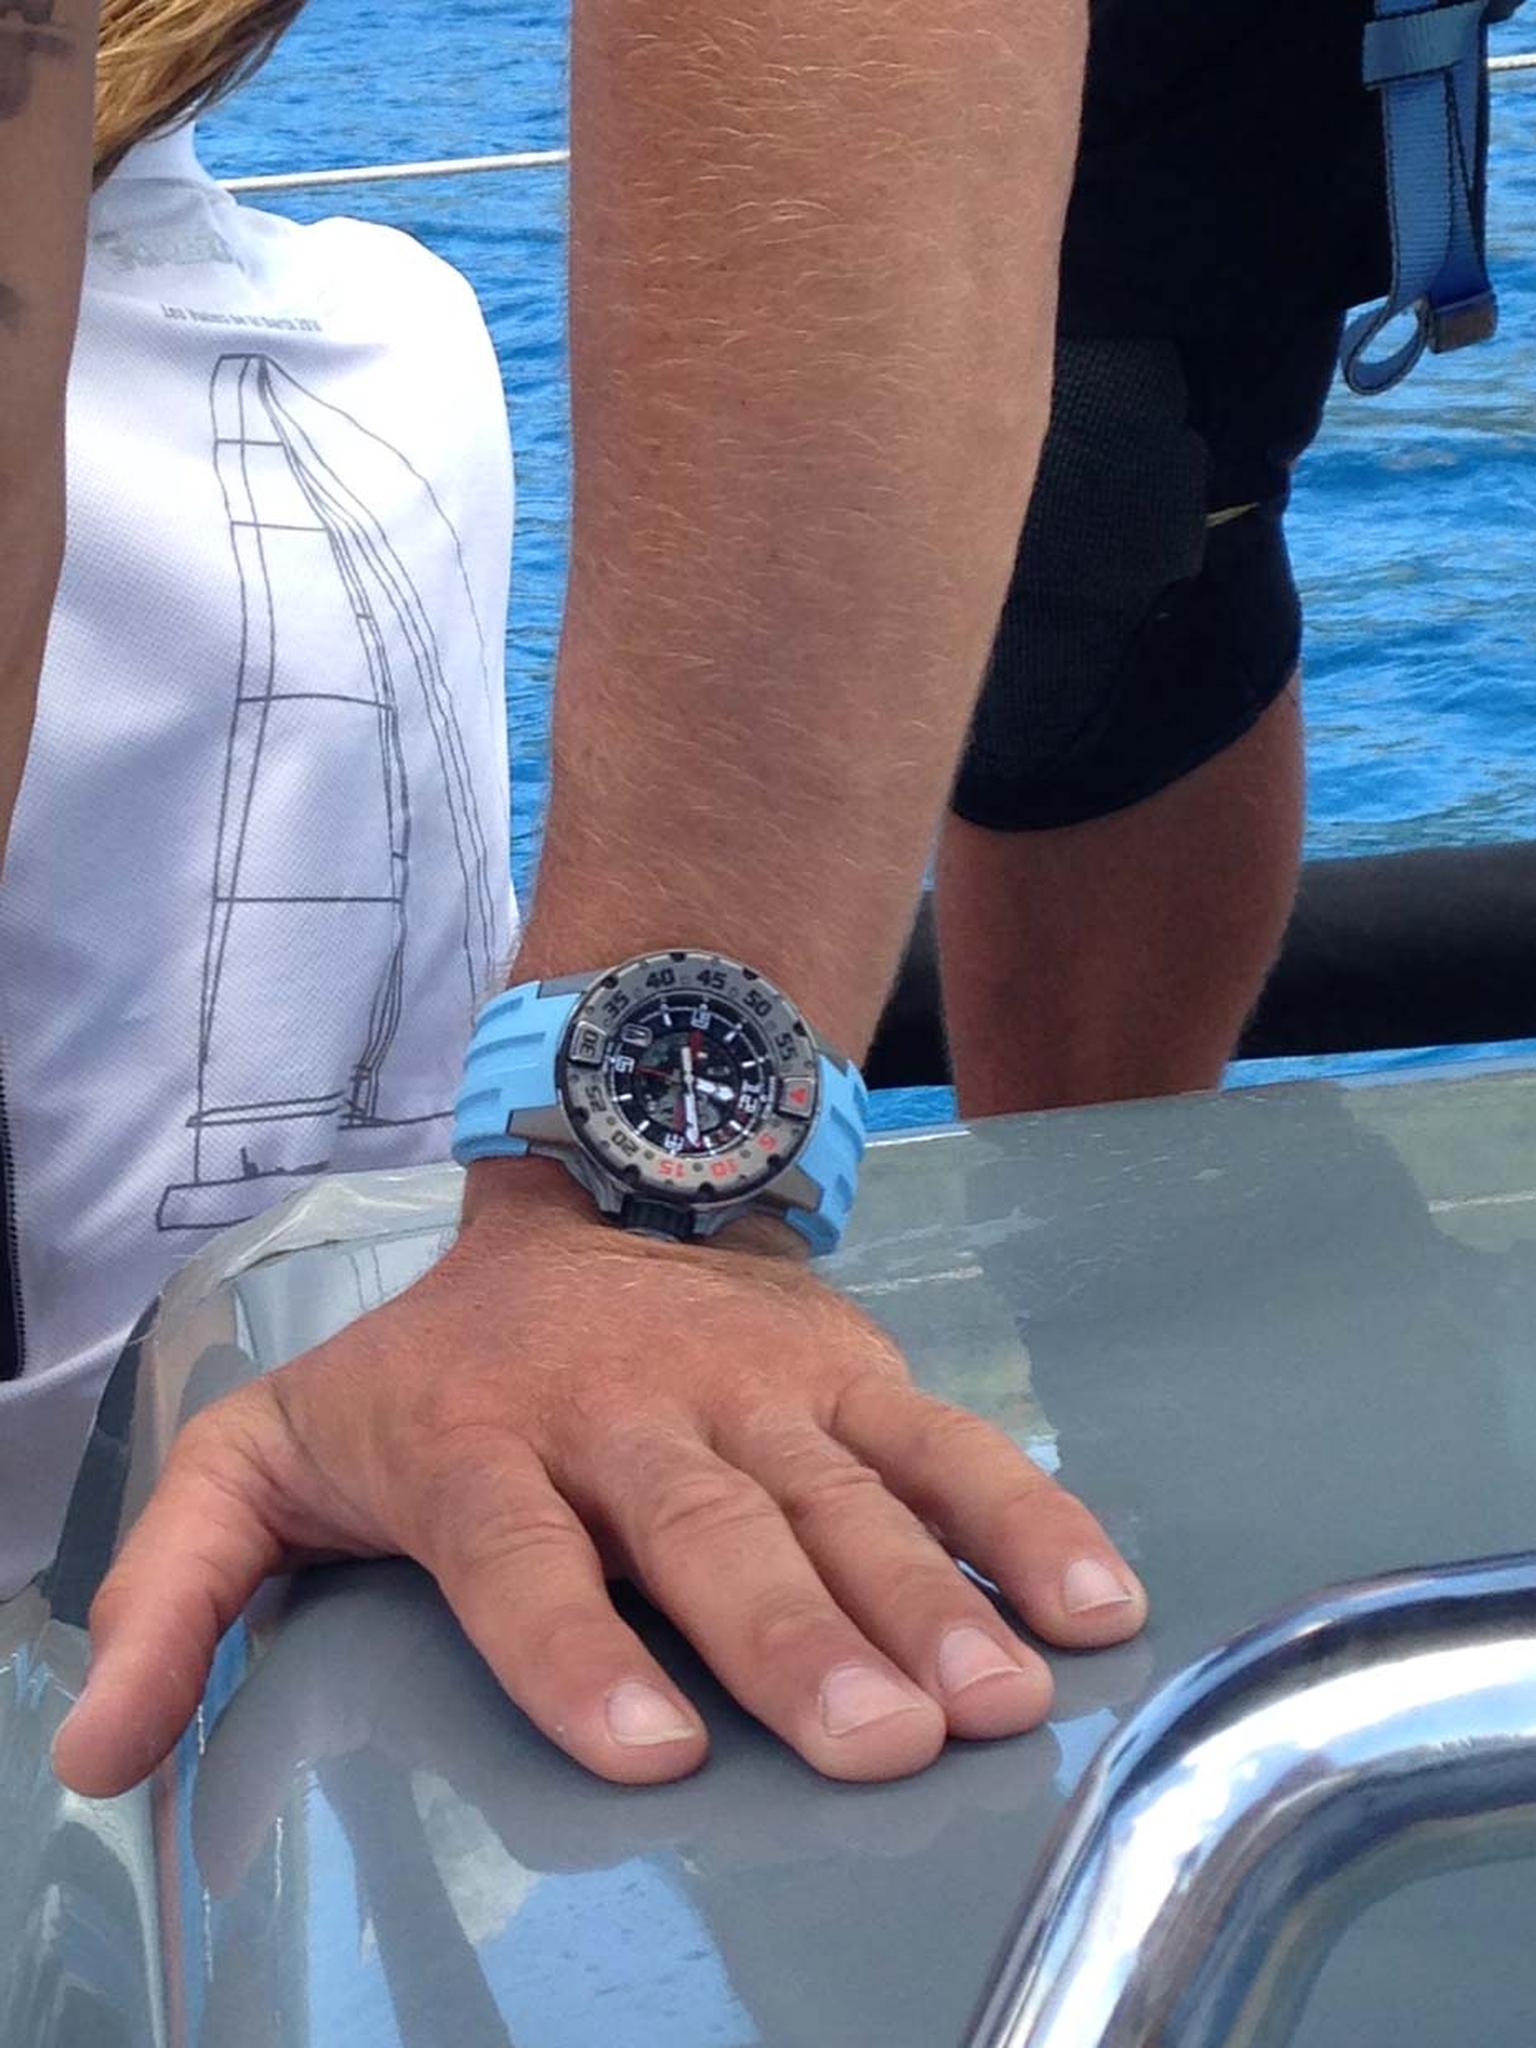 A Richard Mille RM 028 watch in action on board Jolt 2 at the Les Voiles de St Barth Regatta 2014